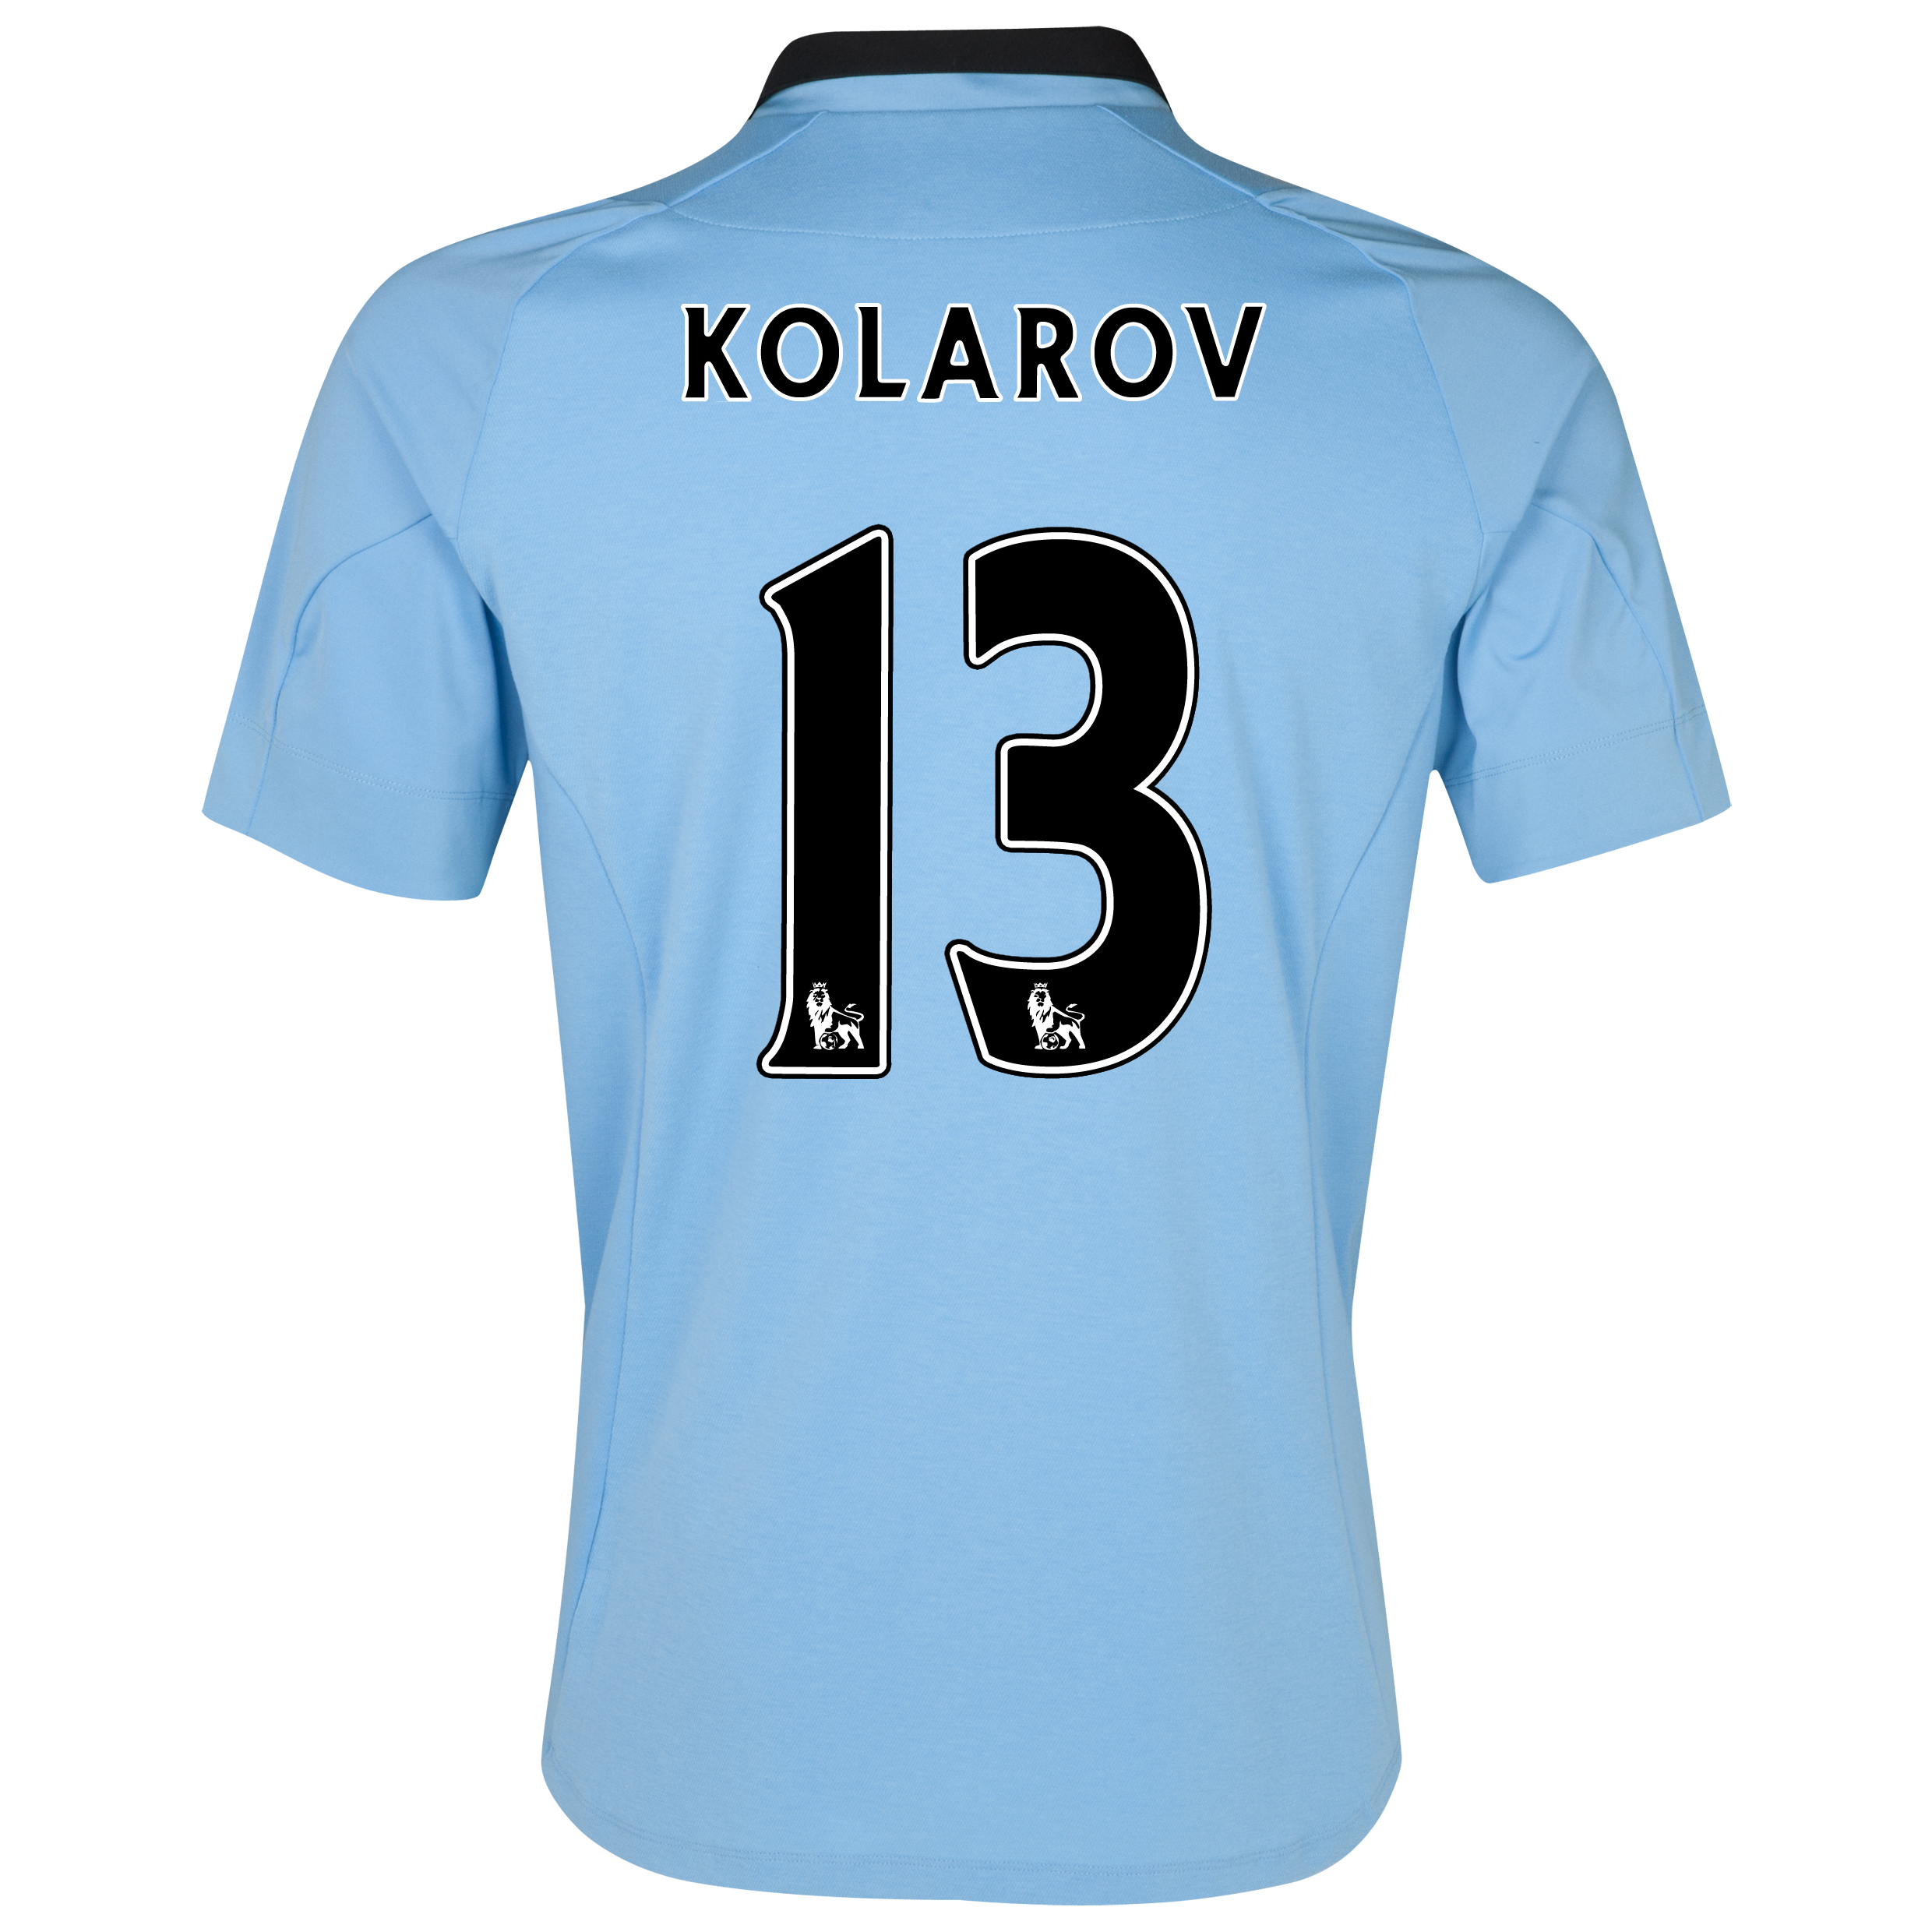 Manchester City Home Shirt 2012/13 - Junior with Kolarov 13 printing